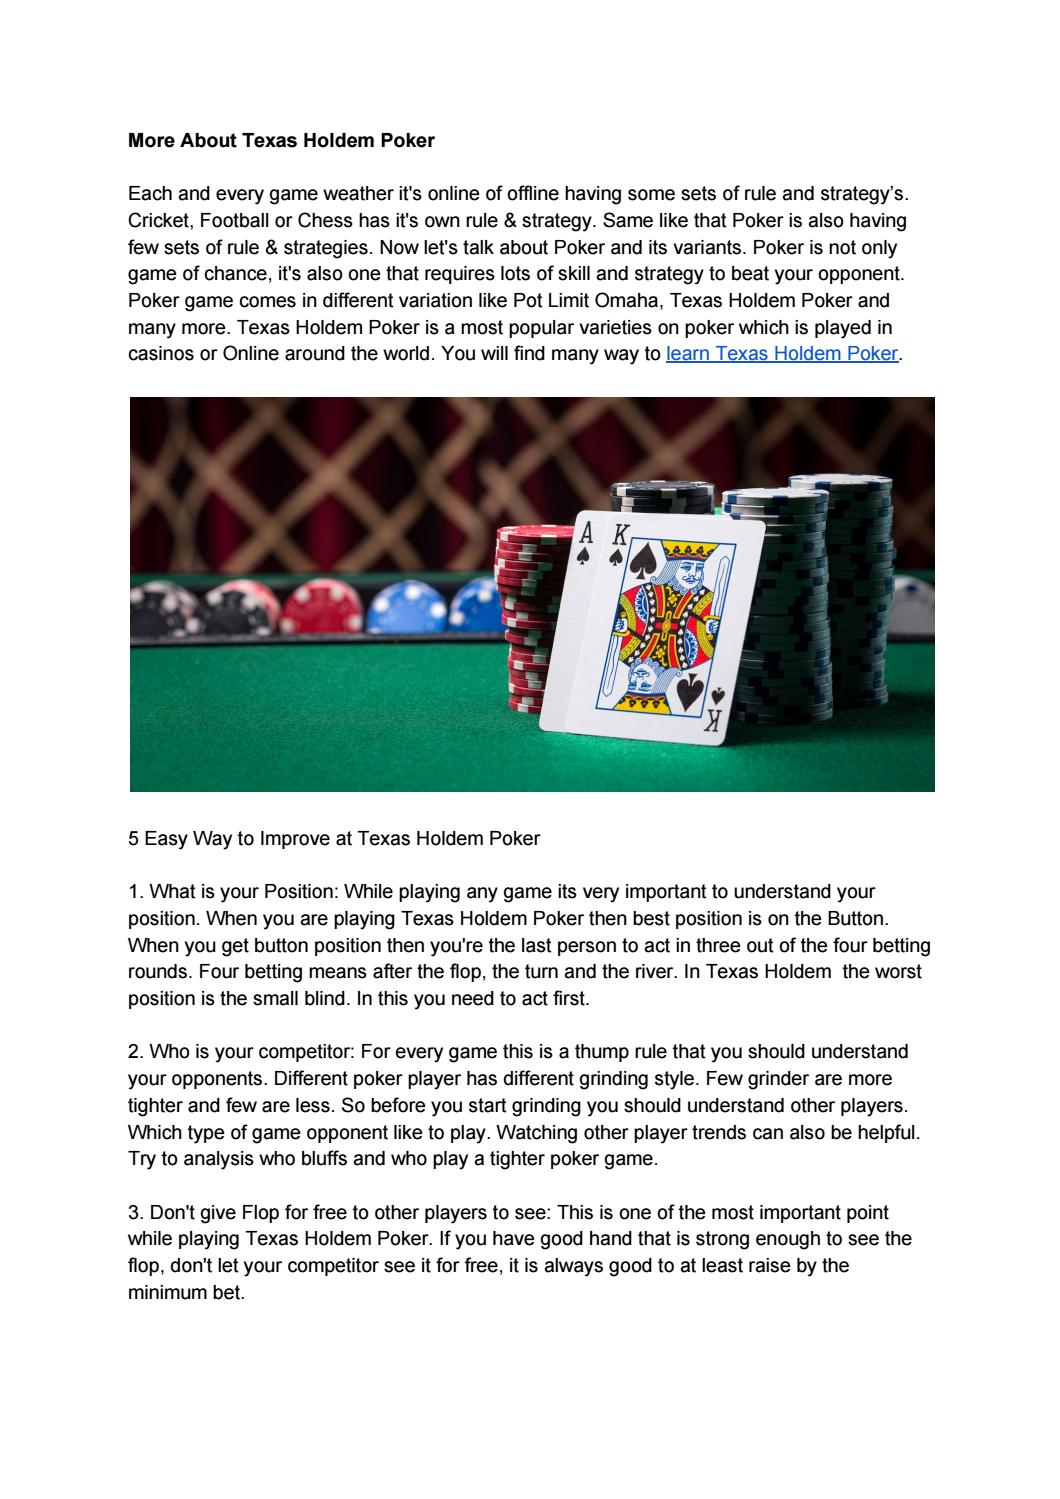 How To Play Texas Holdem Poker Hands And Rules Learn More By Ankit Singh Issuu